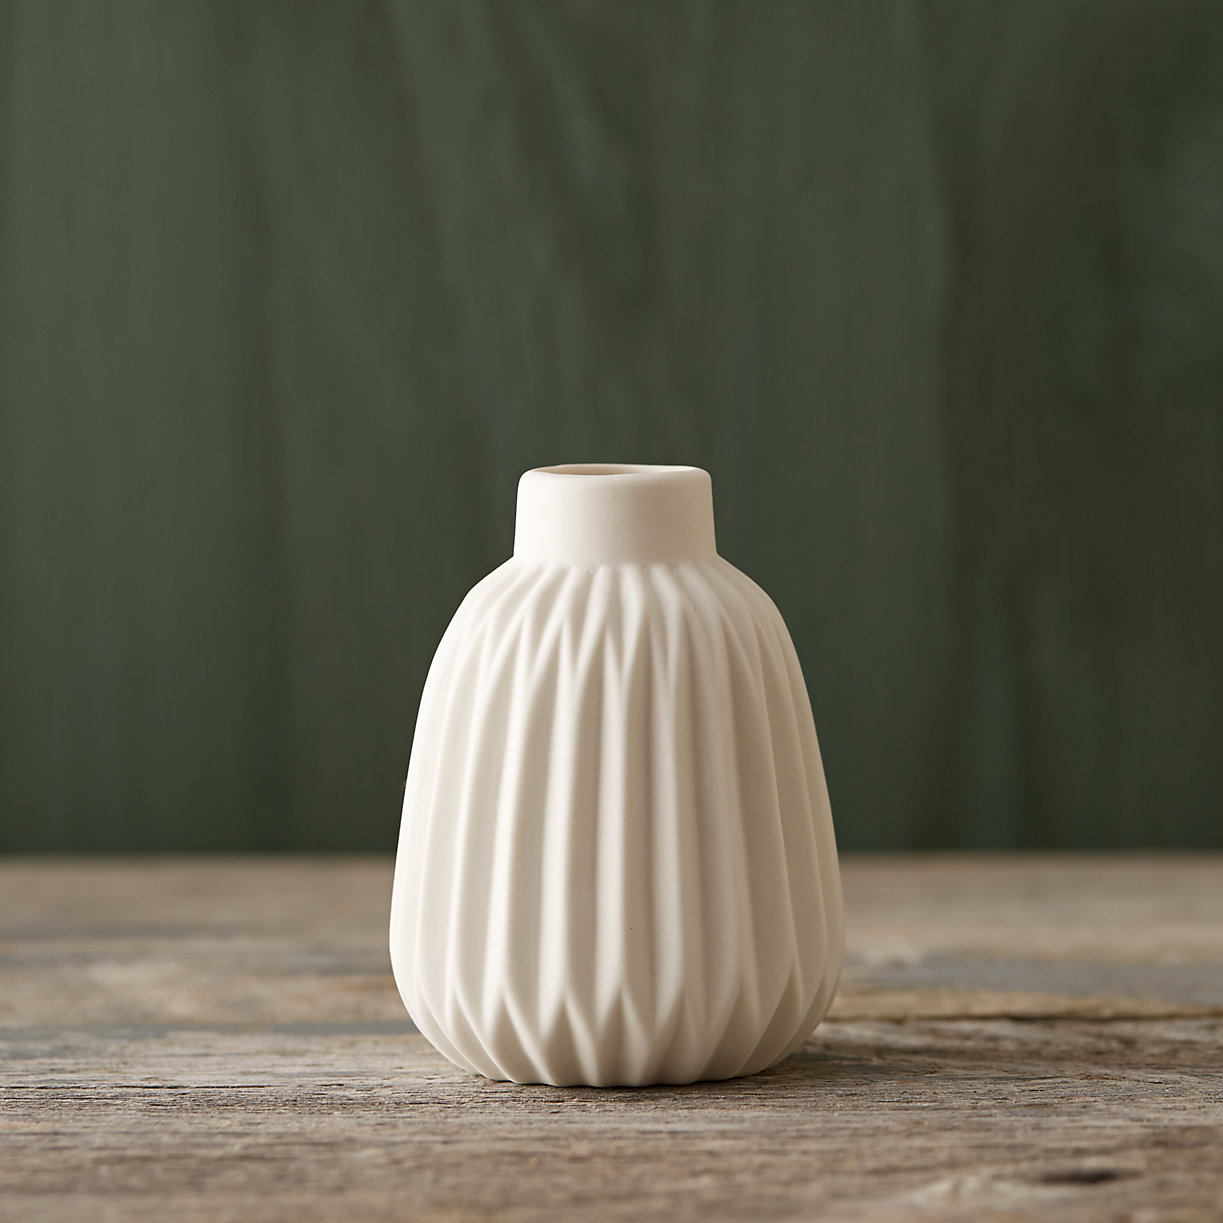 Geo porcelain vase from Terrain